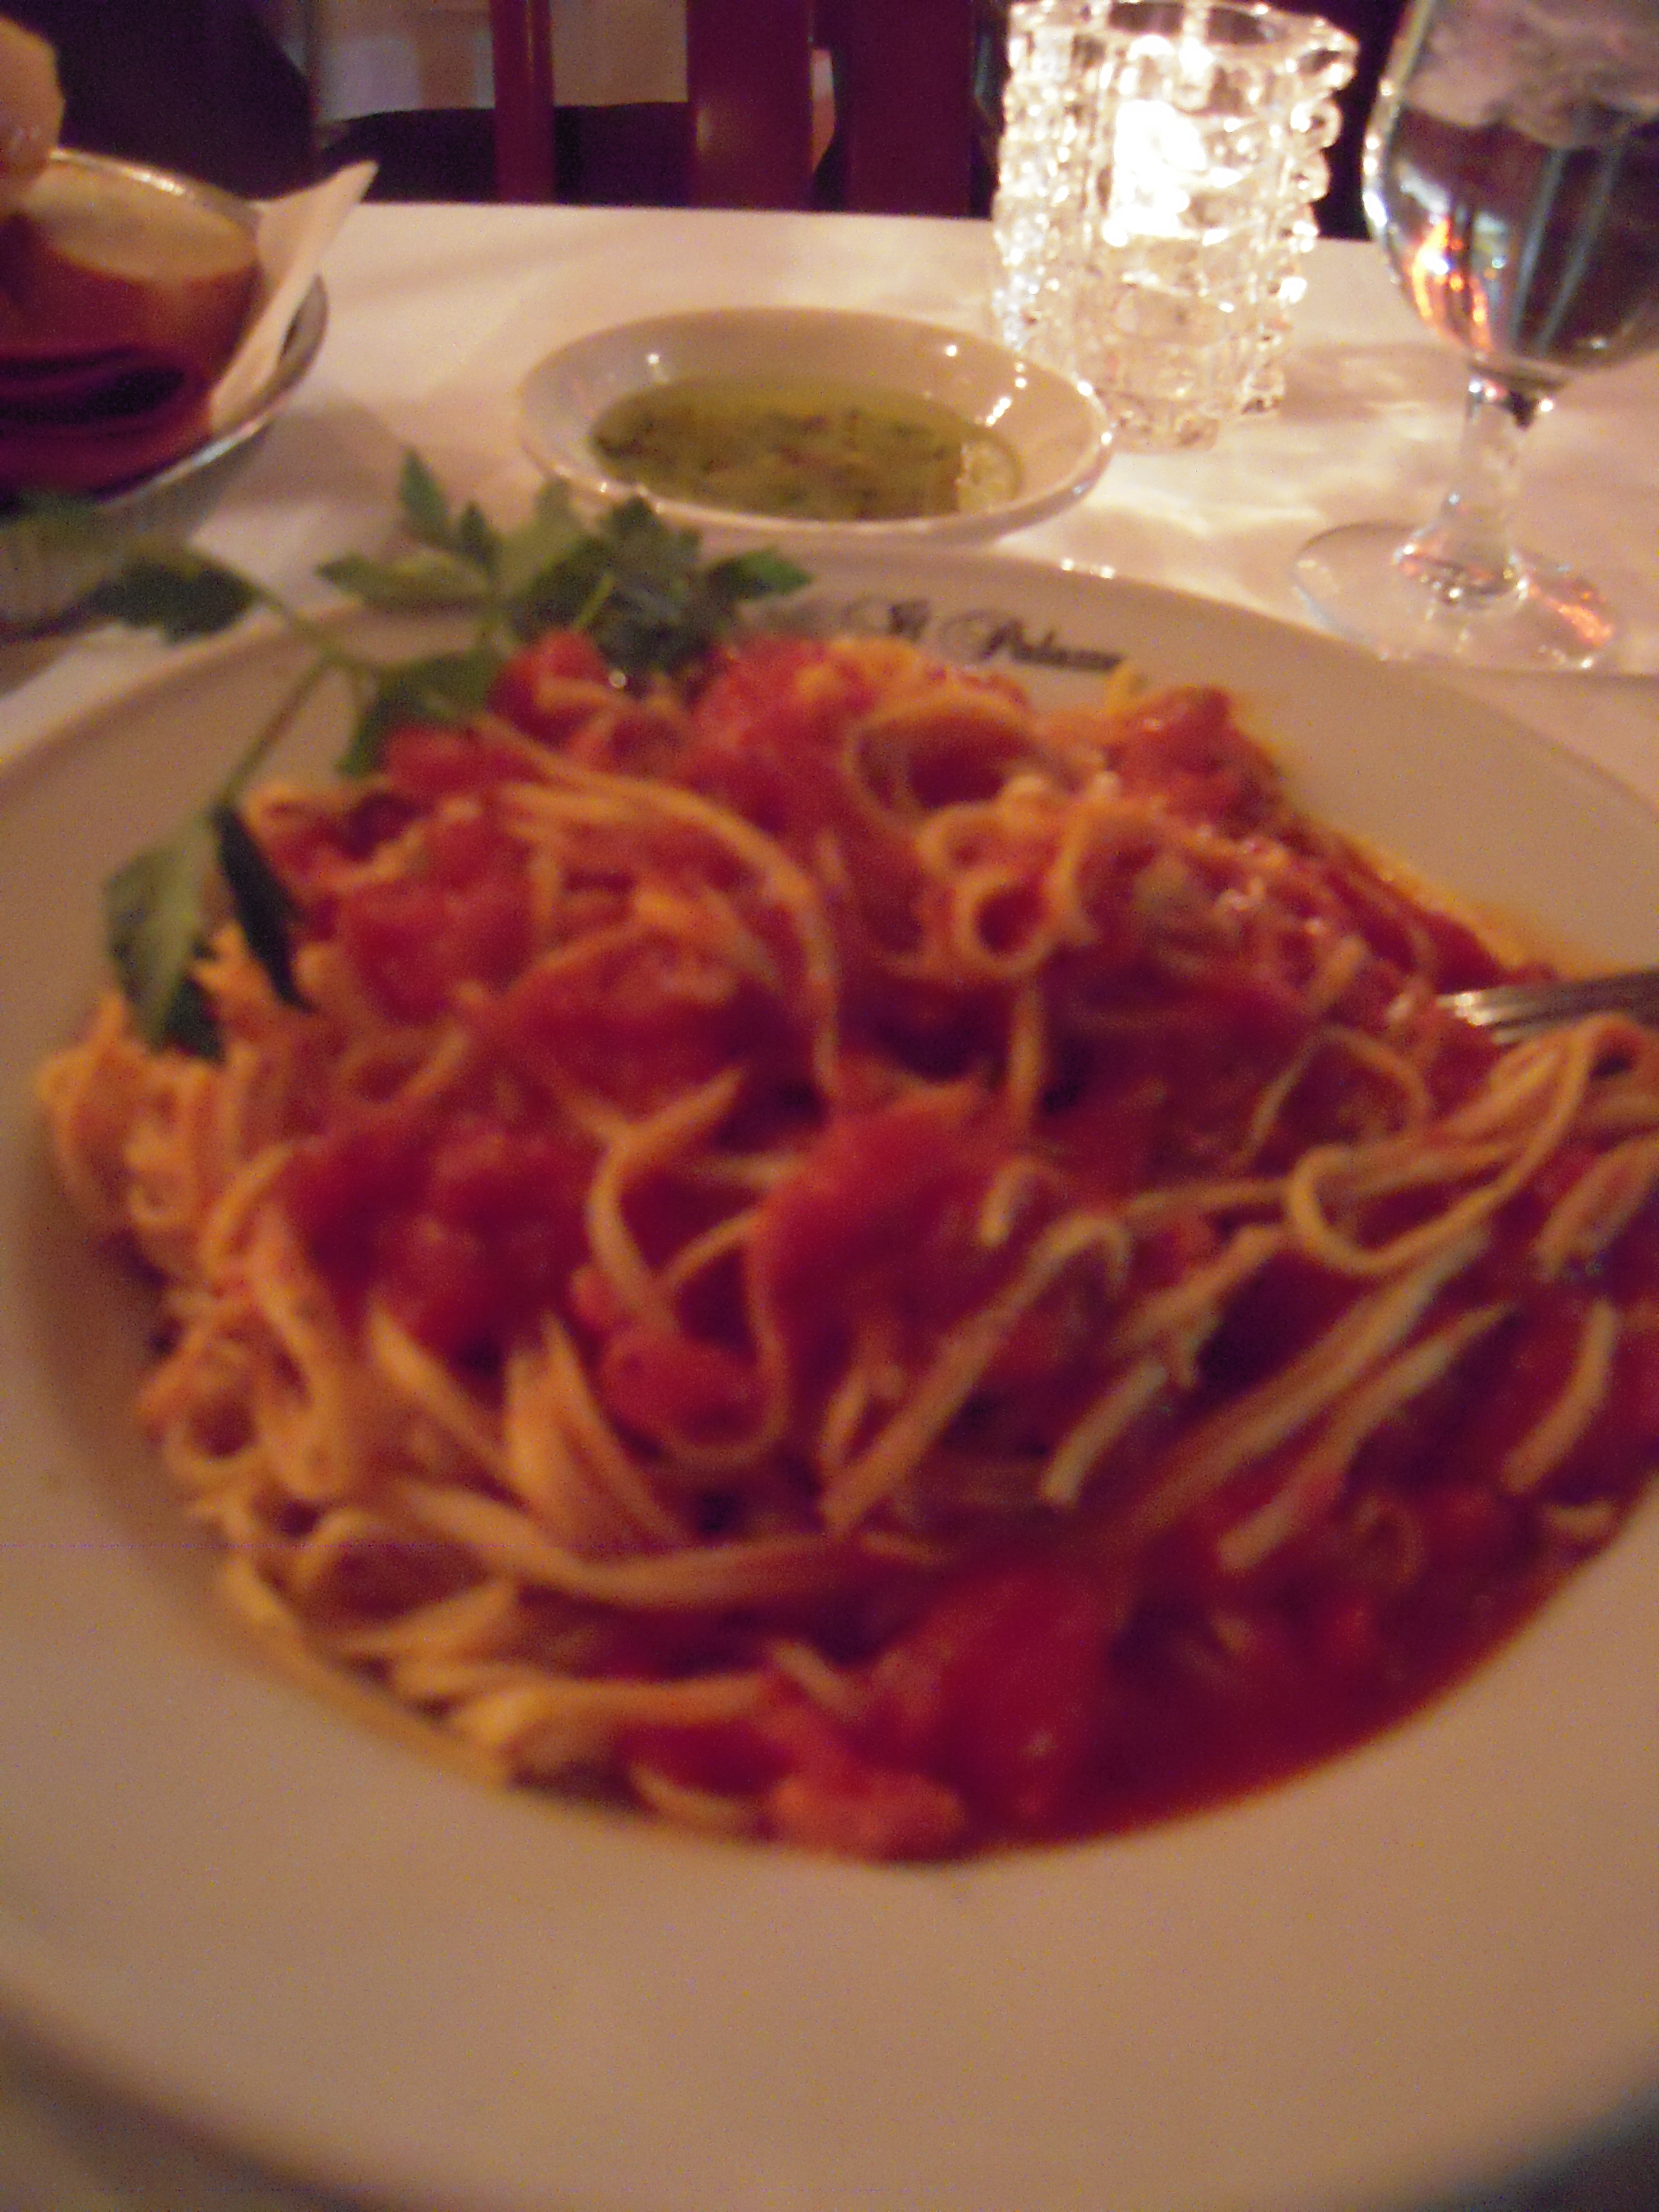 Il Palazzo, Mulberry St. (ny,ny) :: Spaghetti with crushed tomatoes and basil. Sticking with my theory that the more simple the recipe, the harder it is to make. When you don't have a million different competing flavors to hide behind, you really have to do a good job!